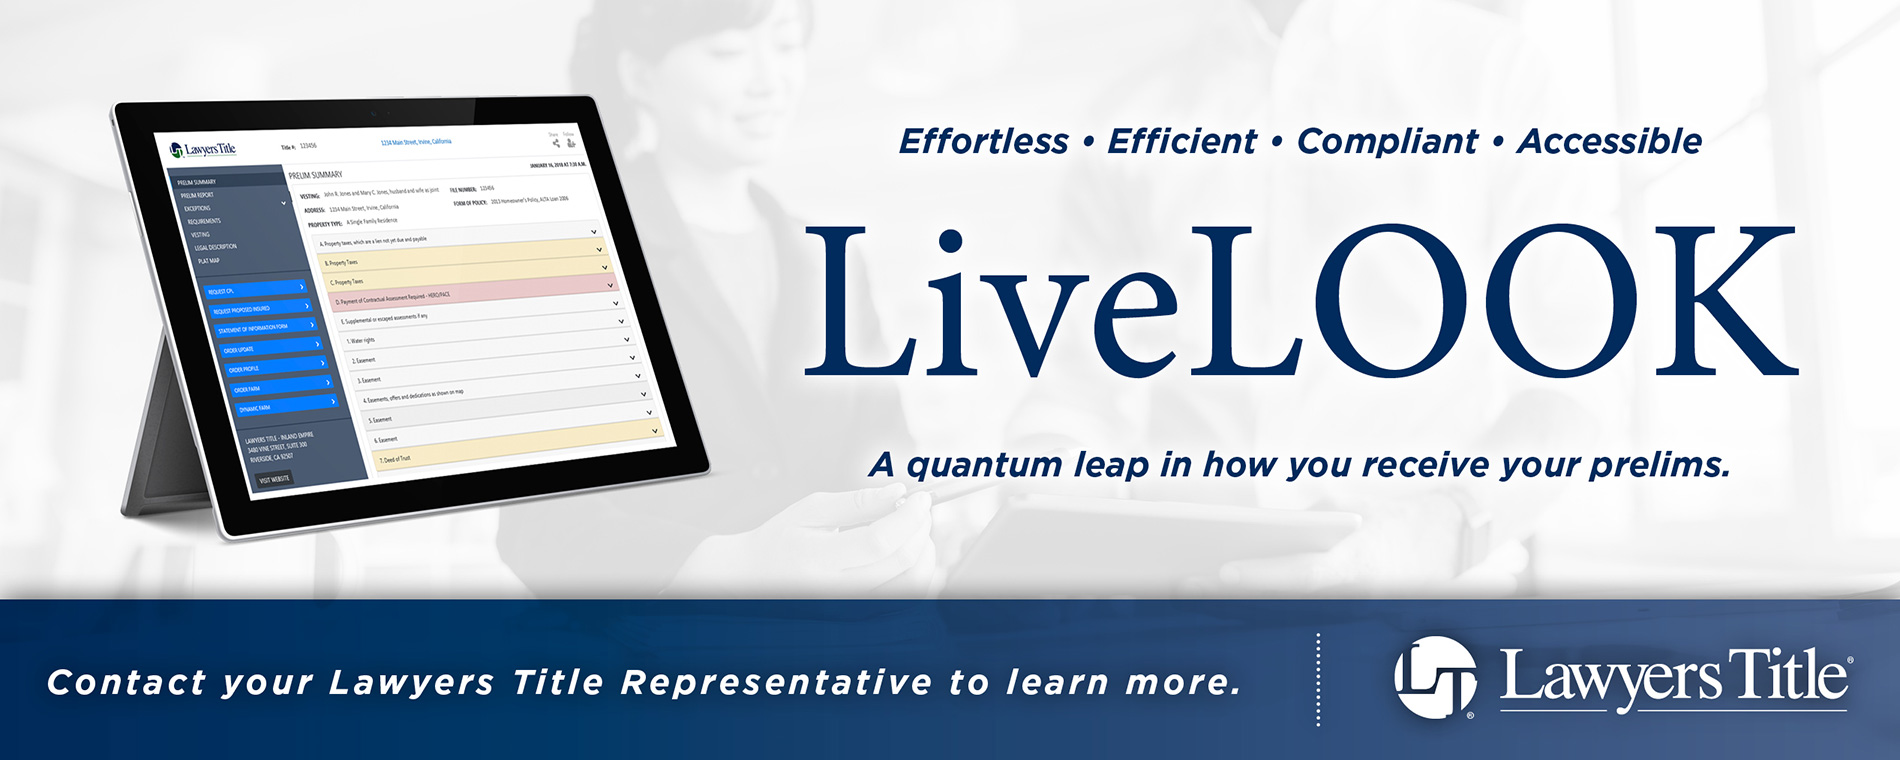 LiveLOOK Created By Lawyers Title